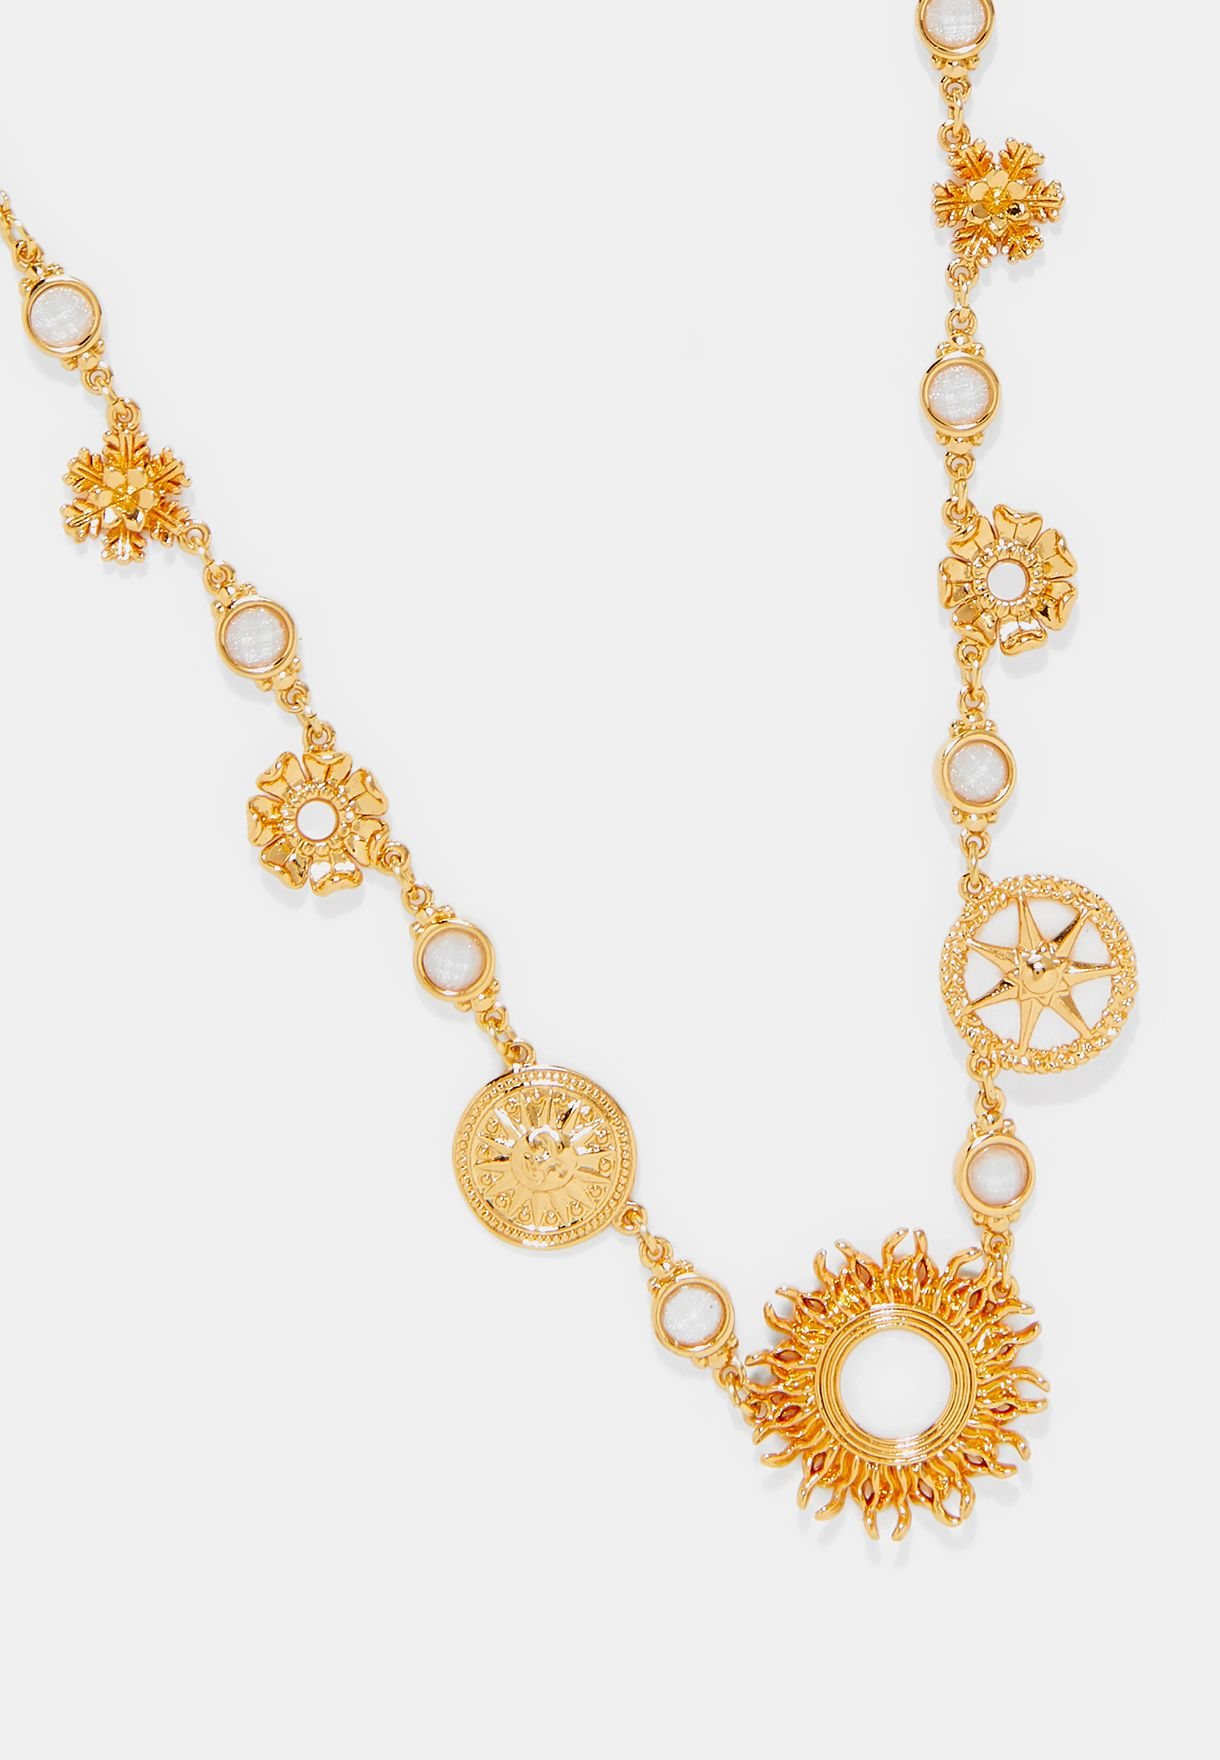 Three Suns Necklace